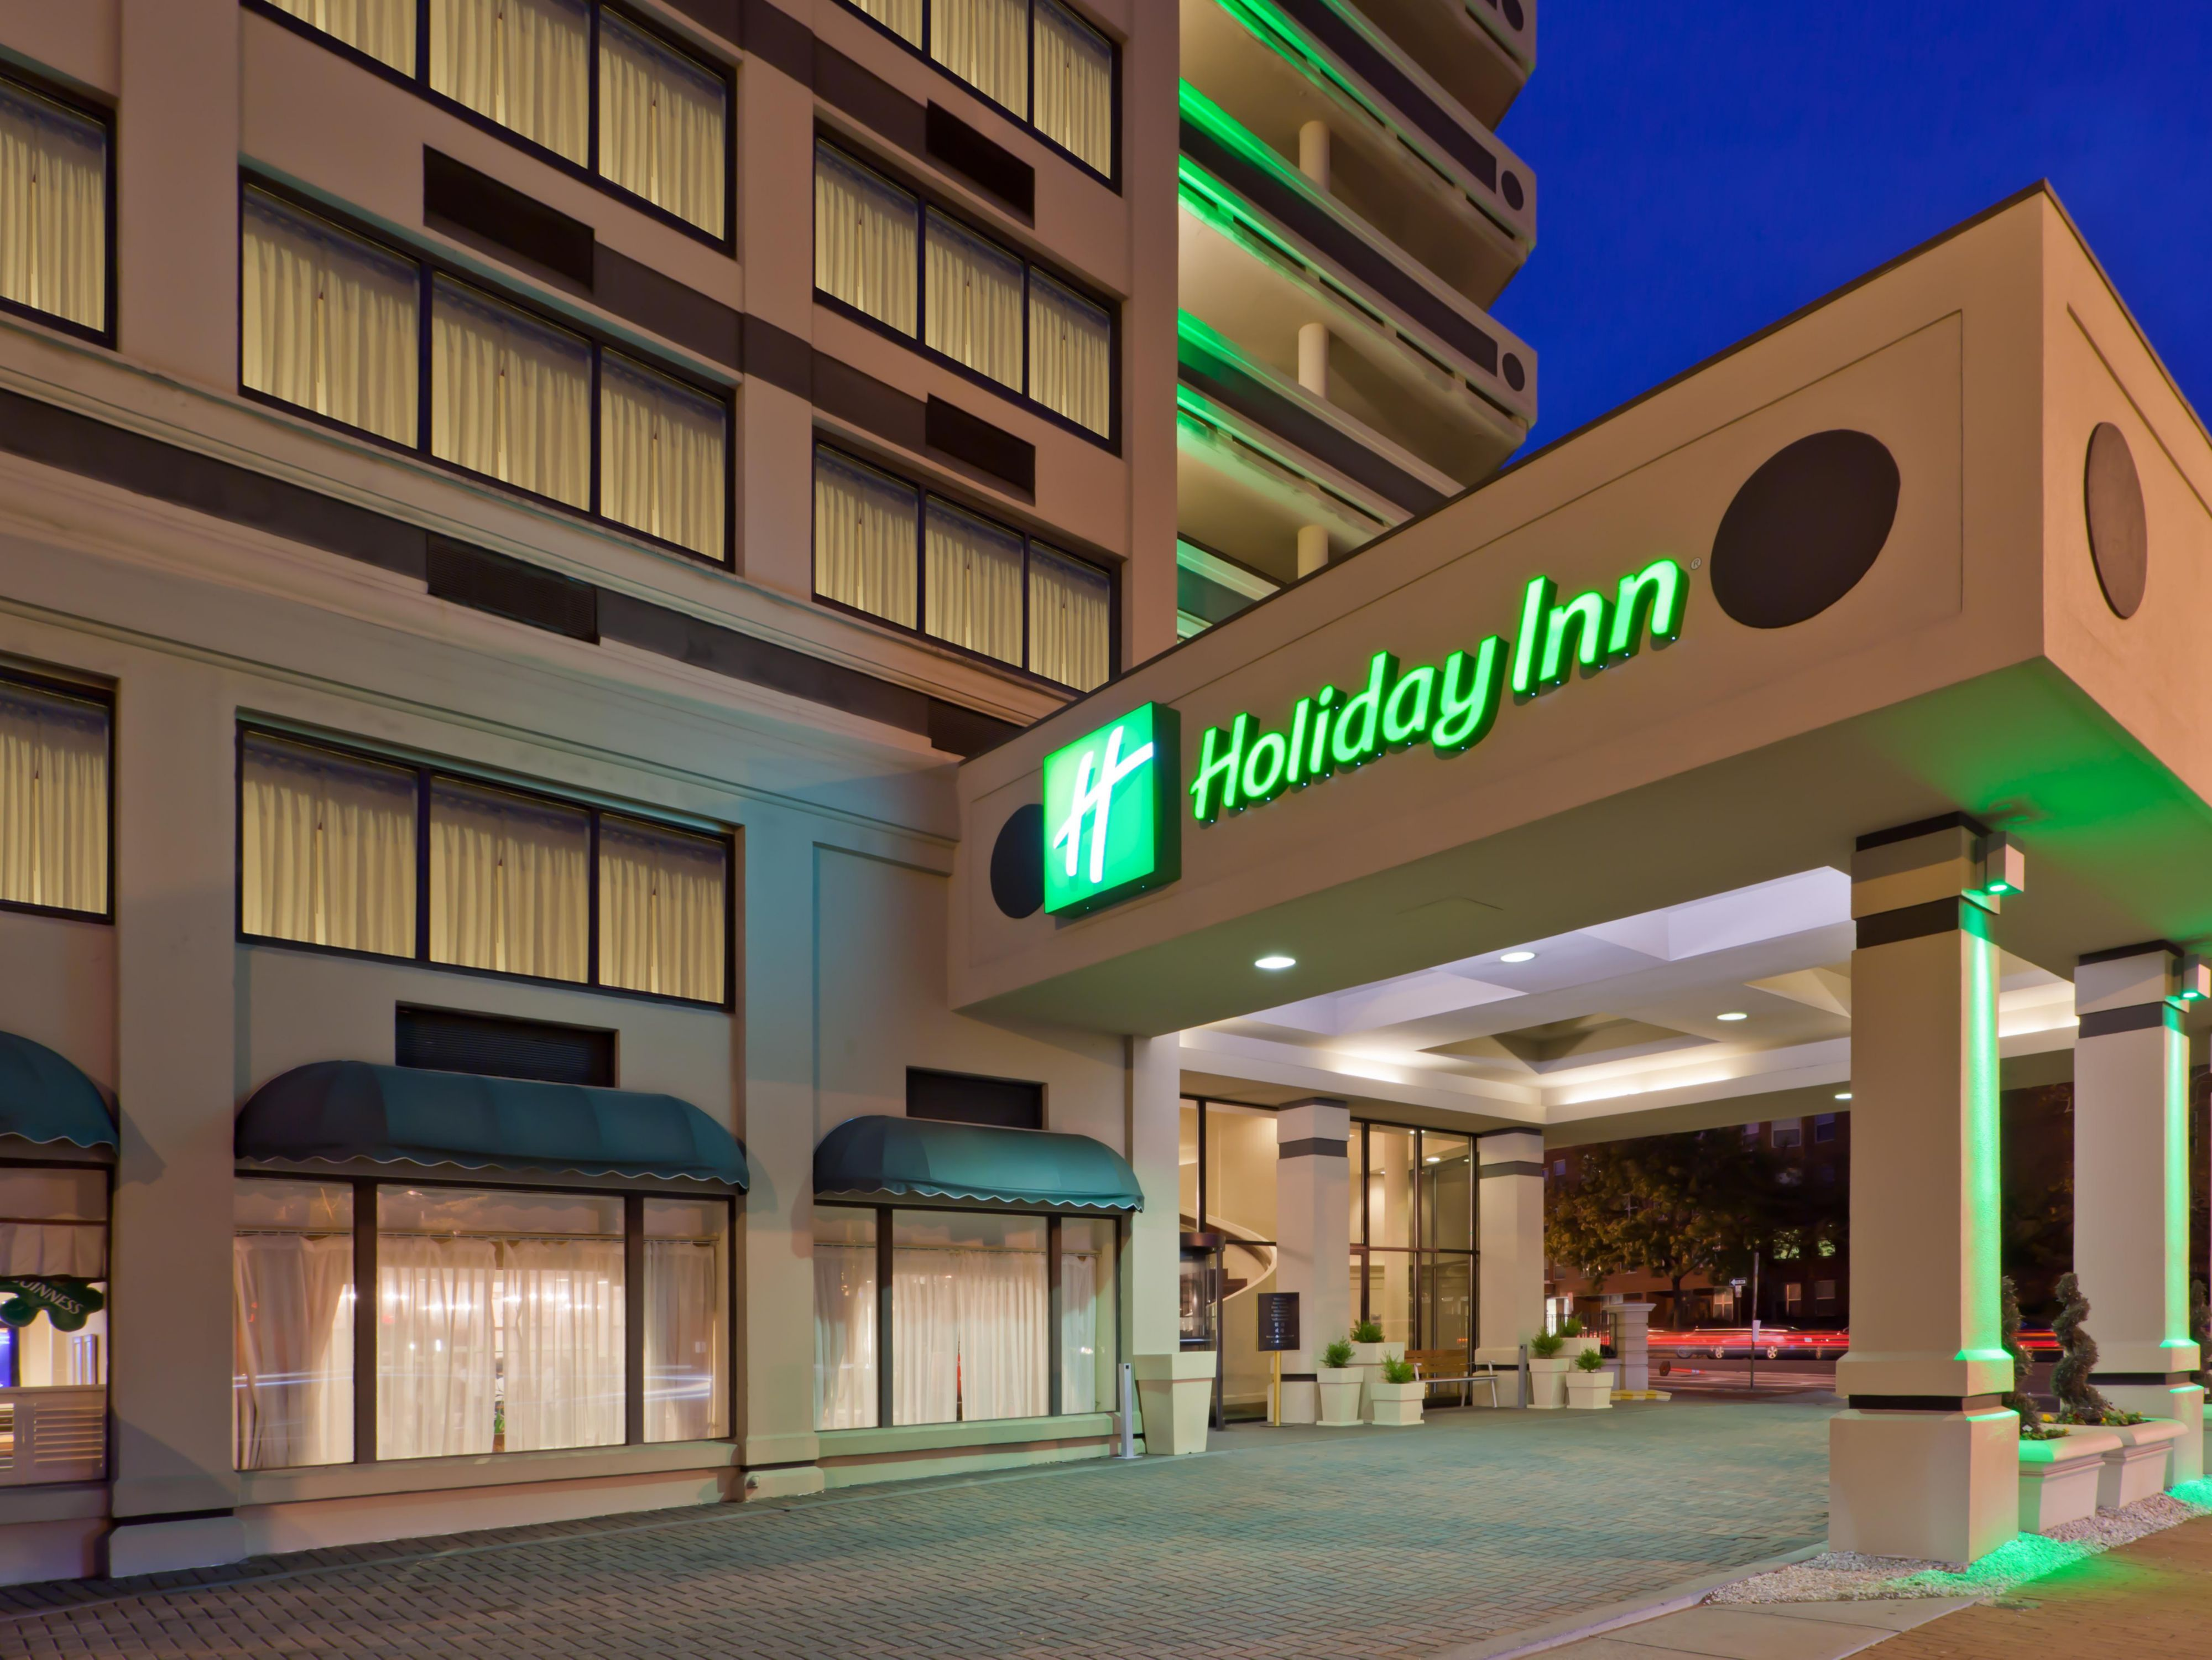 Holiday Inn Washington Central White House